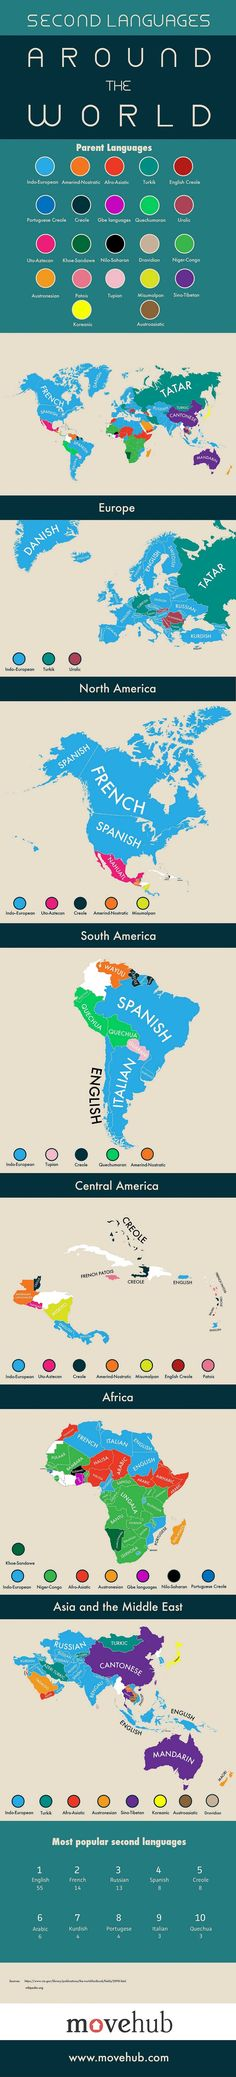 Fascinating maps reveal each country's surprising second language